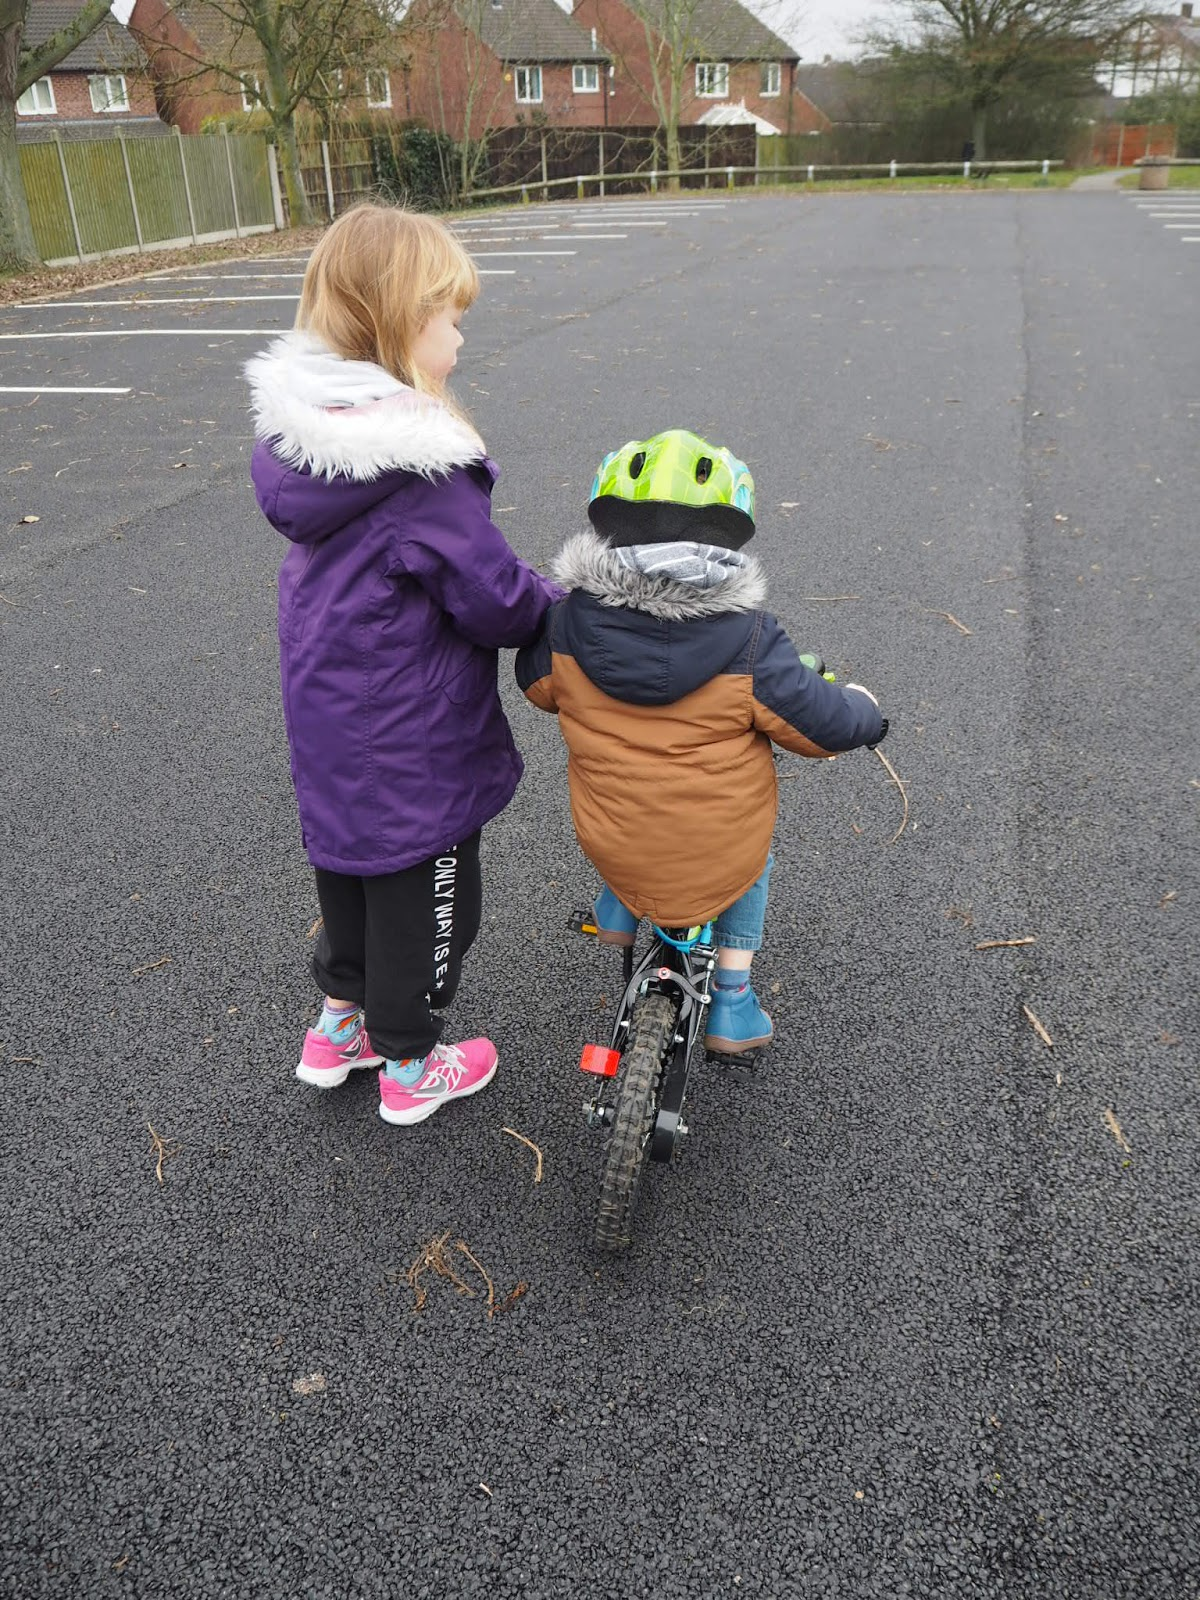 Sister helping brother with bike